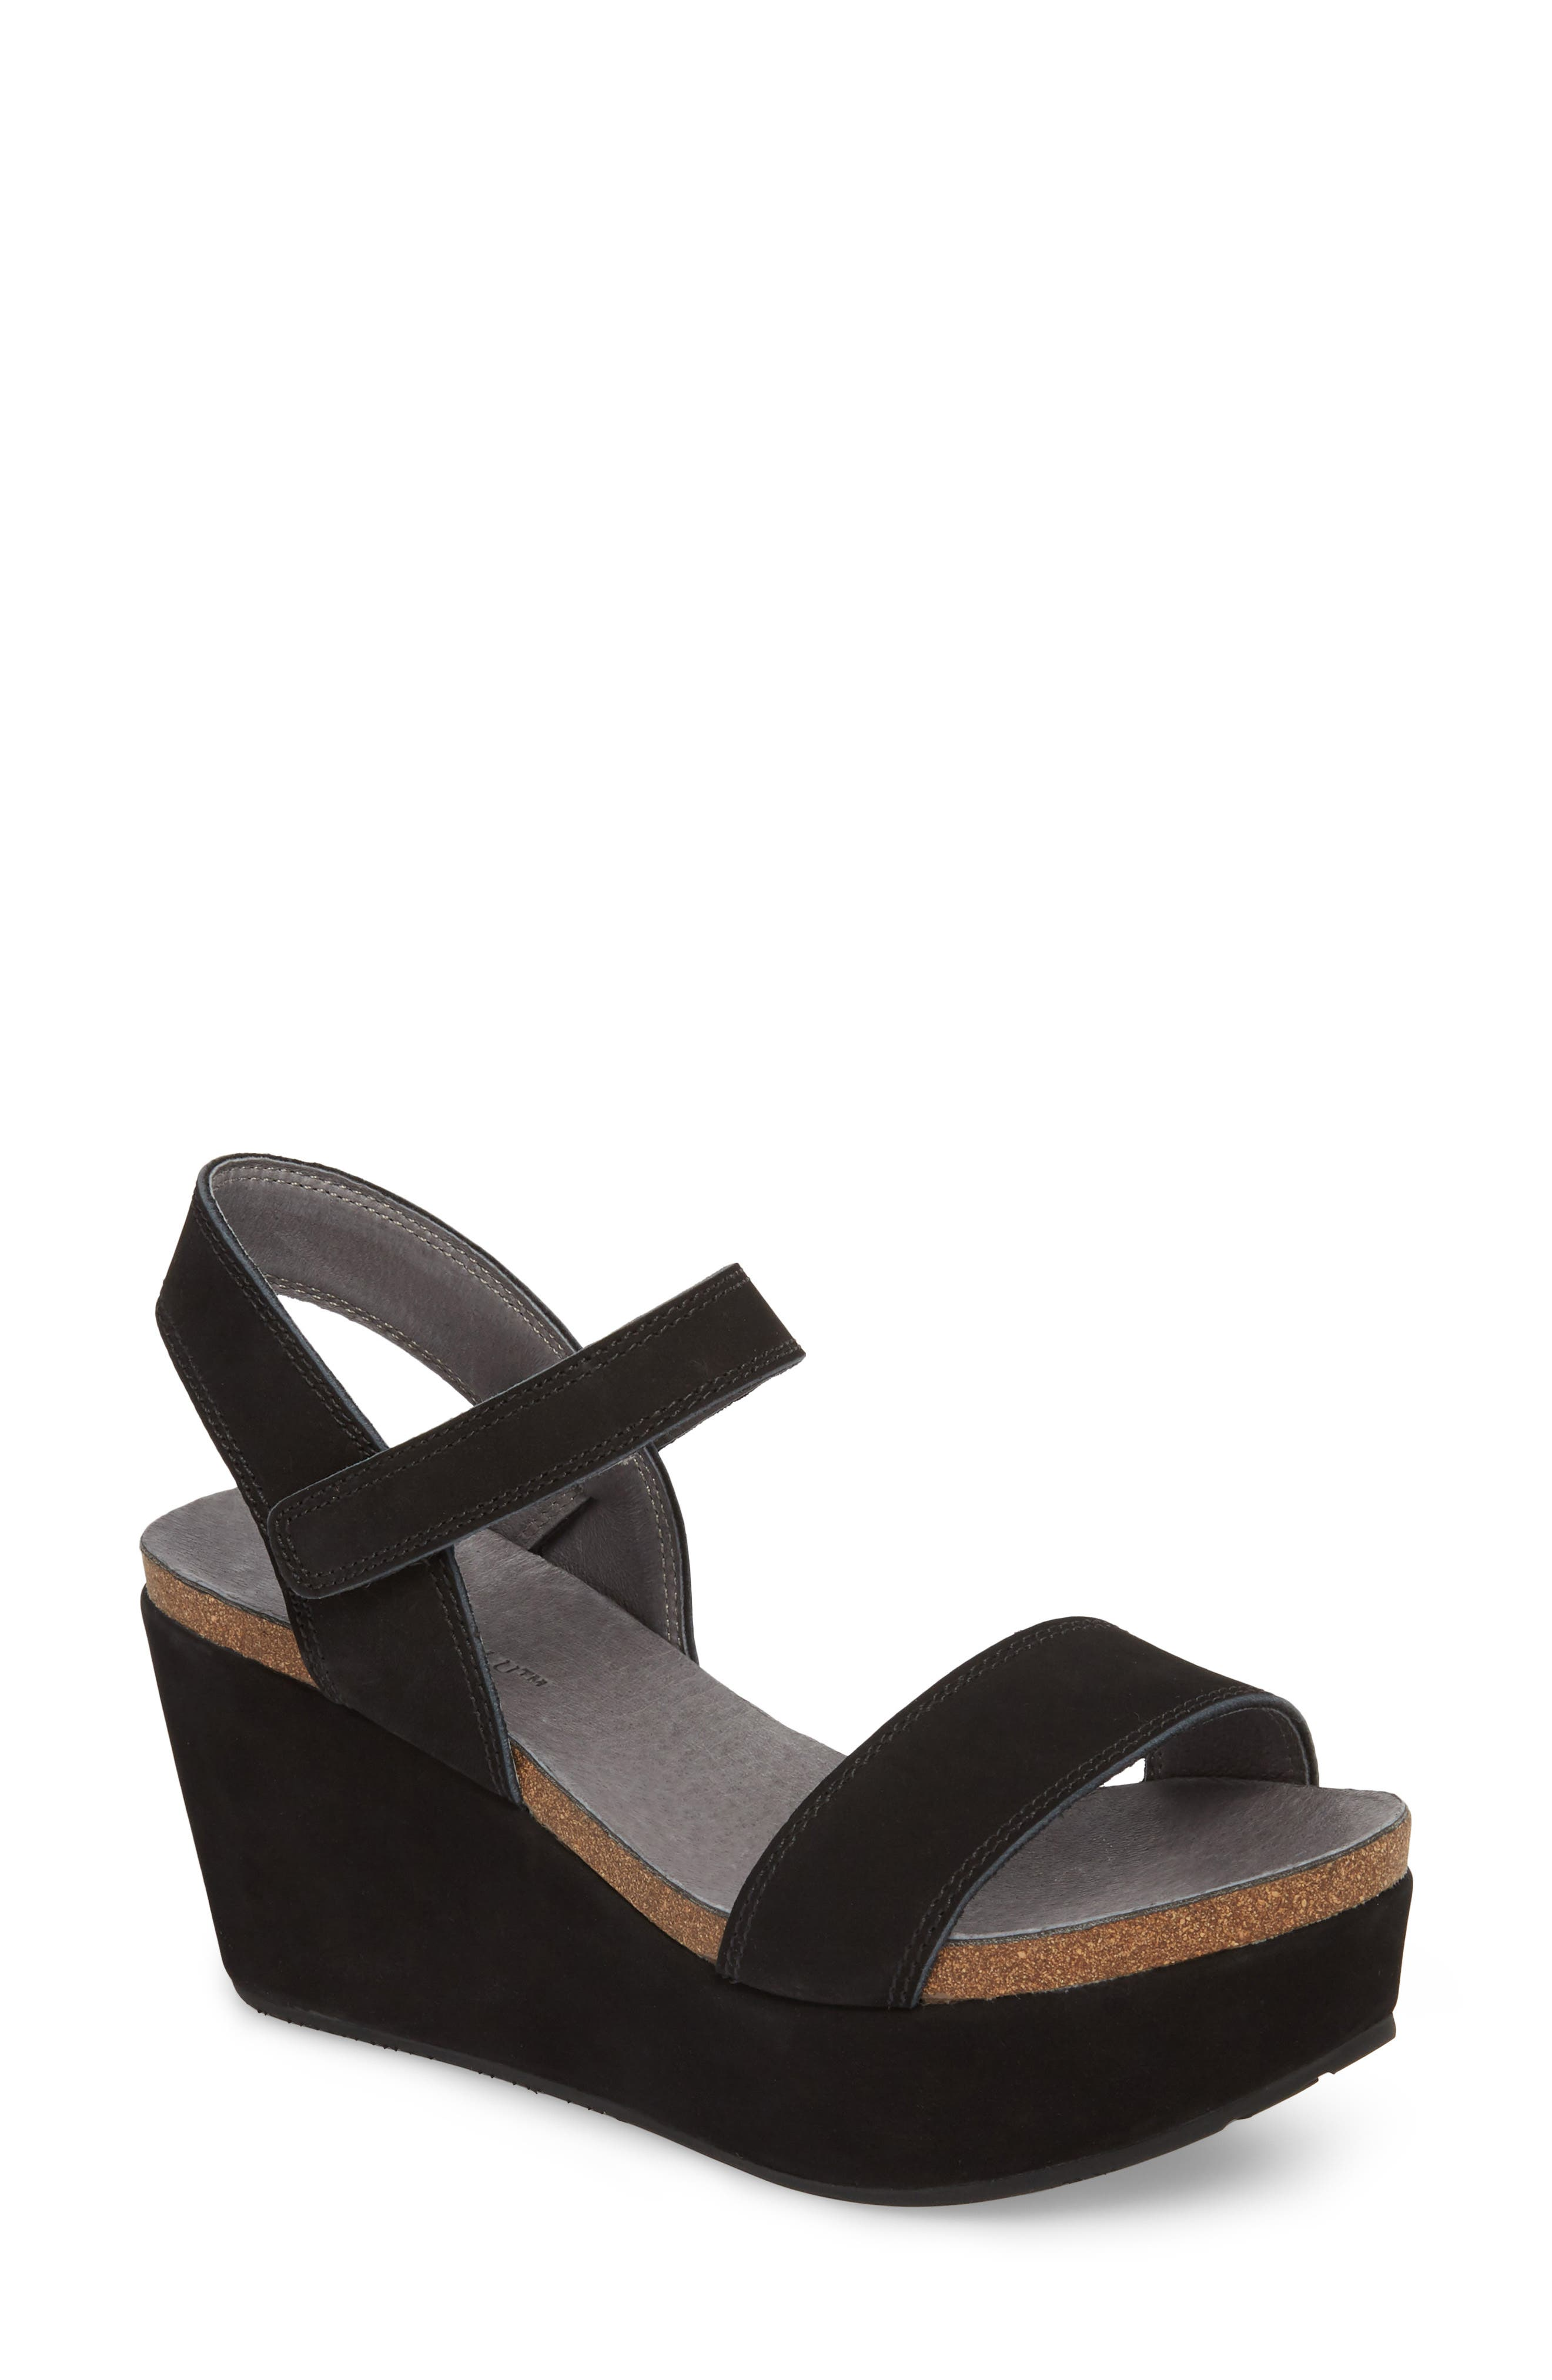 Watson Ankle Strap Wedge Sandal,                         Main,                         color, BLACK NUBUCK